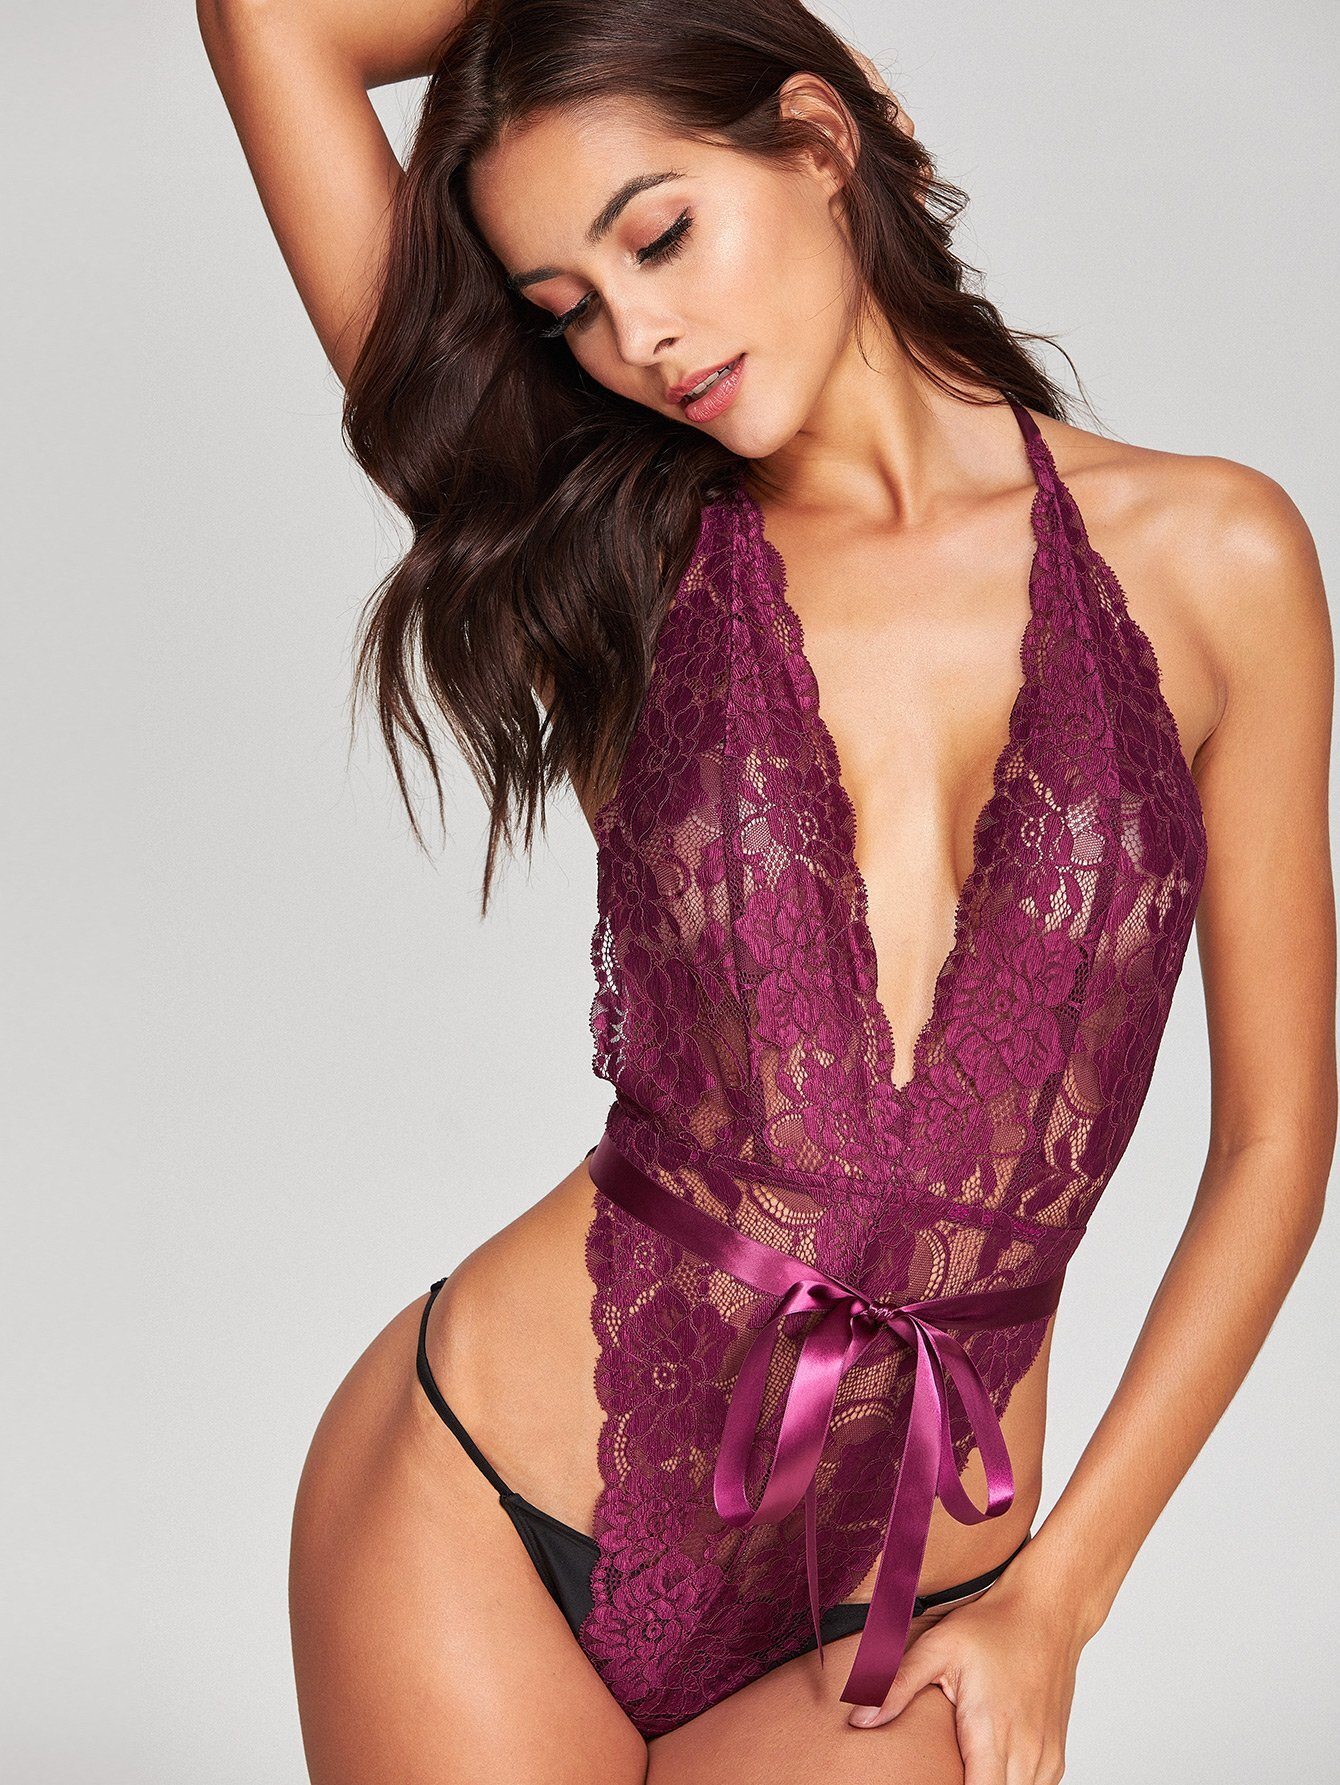 Ribbon Tie Waist Open Back Halter Sheer Lace Teddy flounce embellished sheer lace teddy